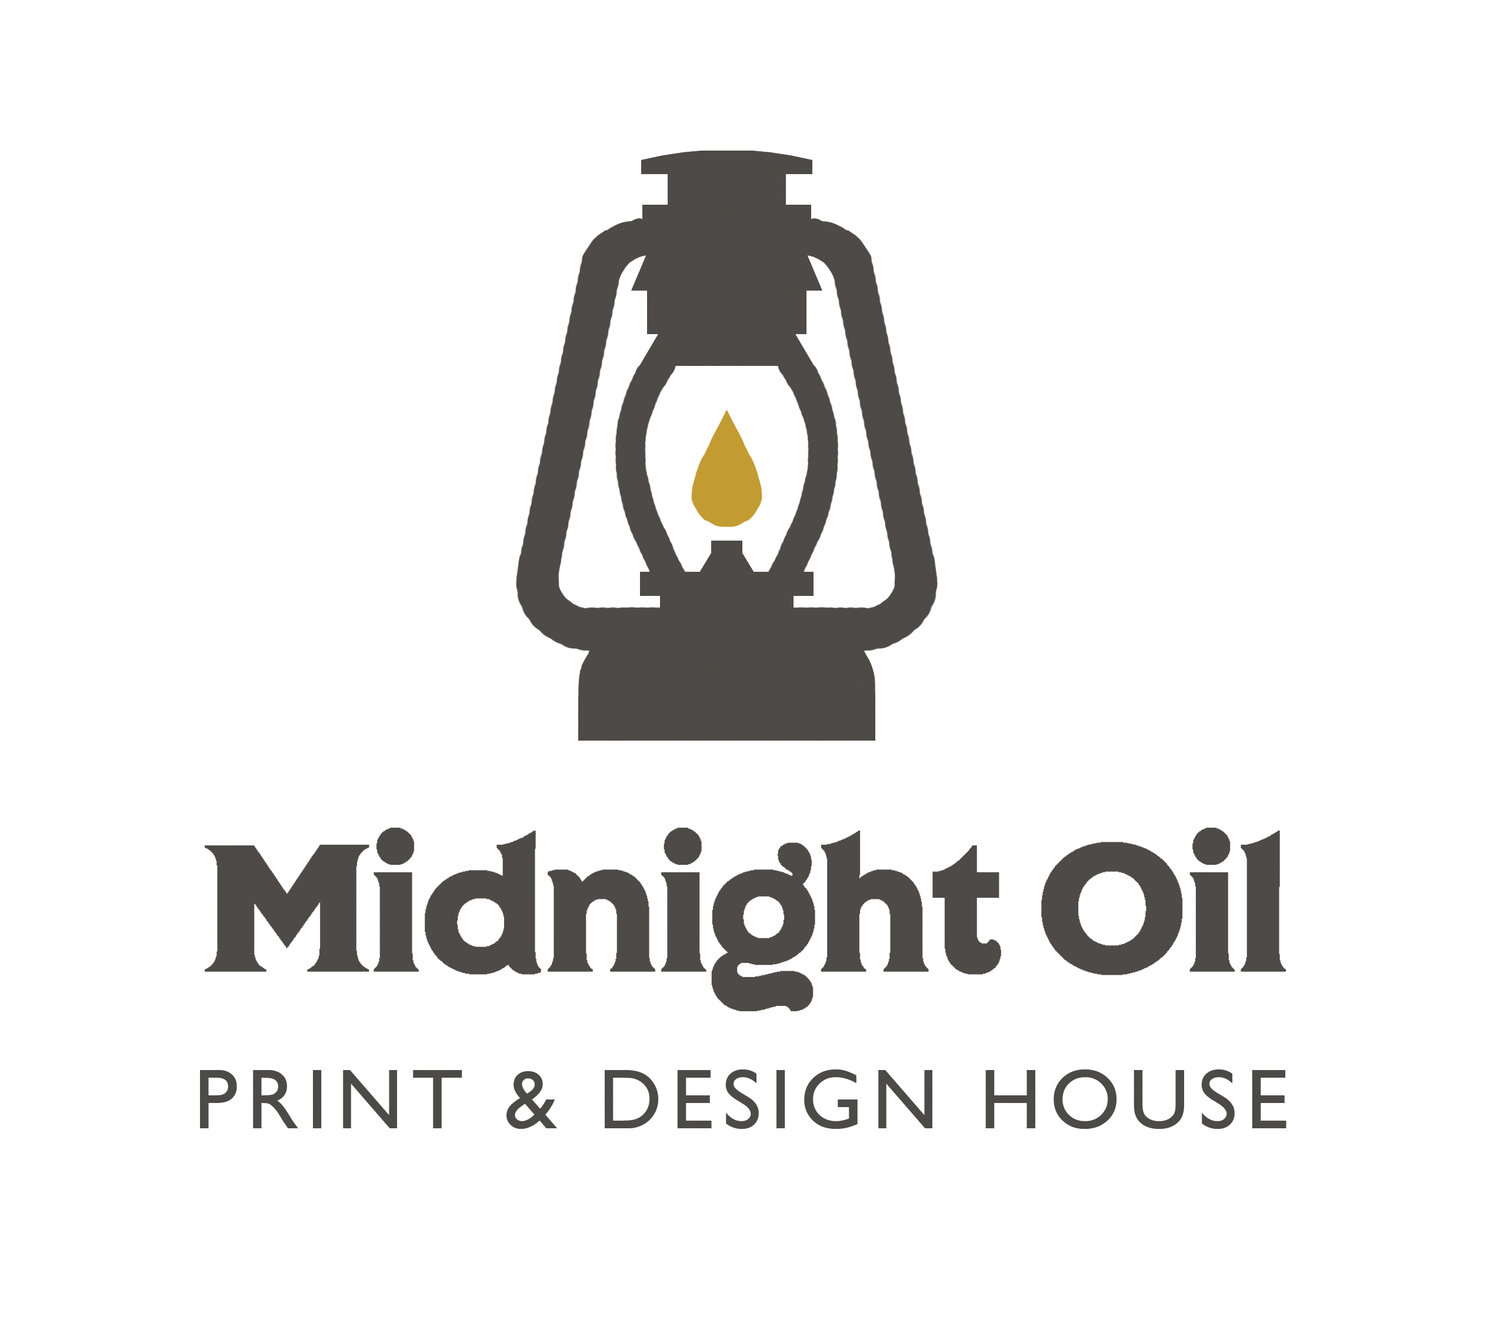 Midnight Oil Print & Design House